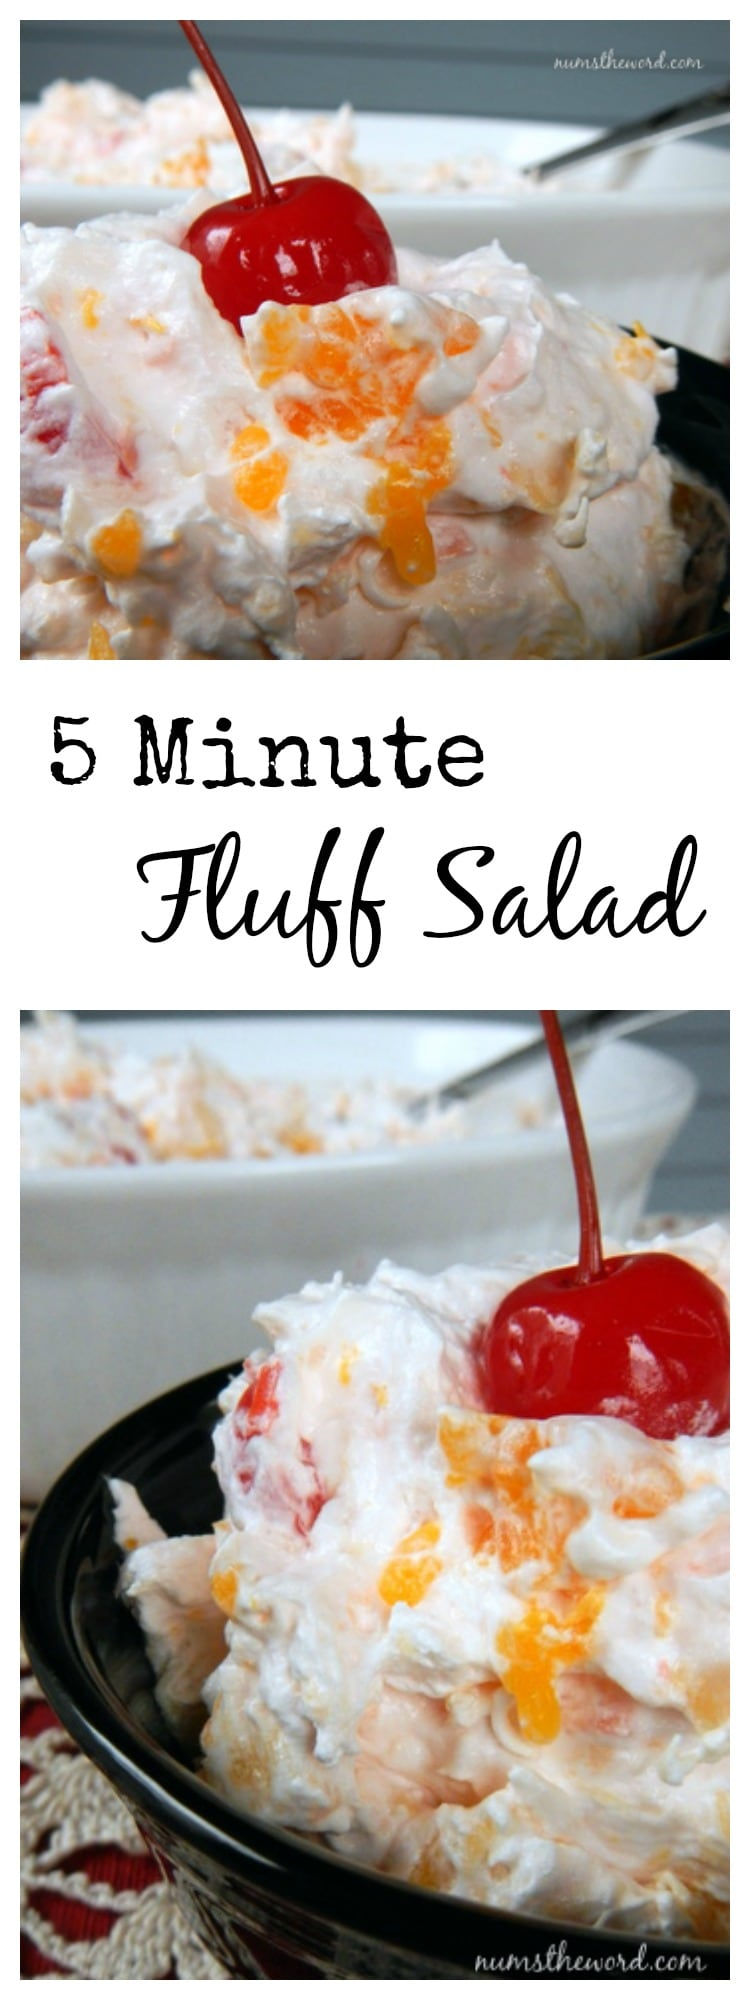 5 Minute Fluff Salad - collage of images for Pinterest long pin